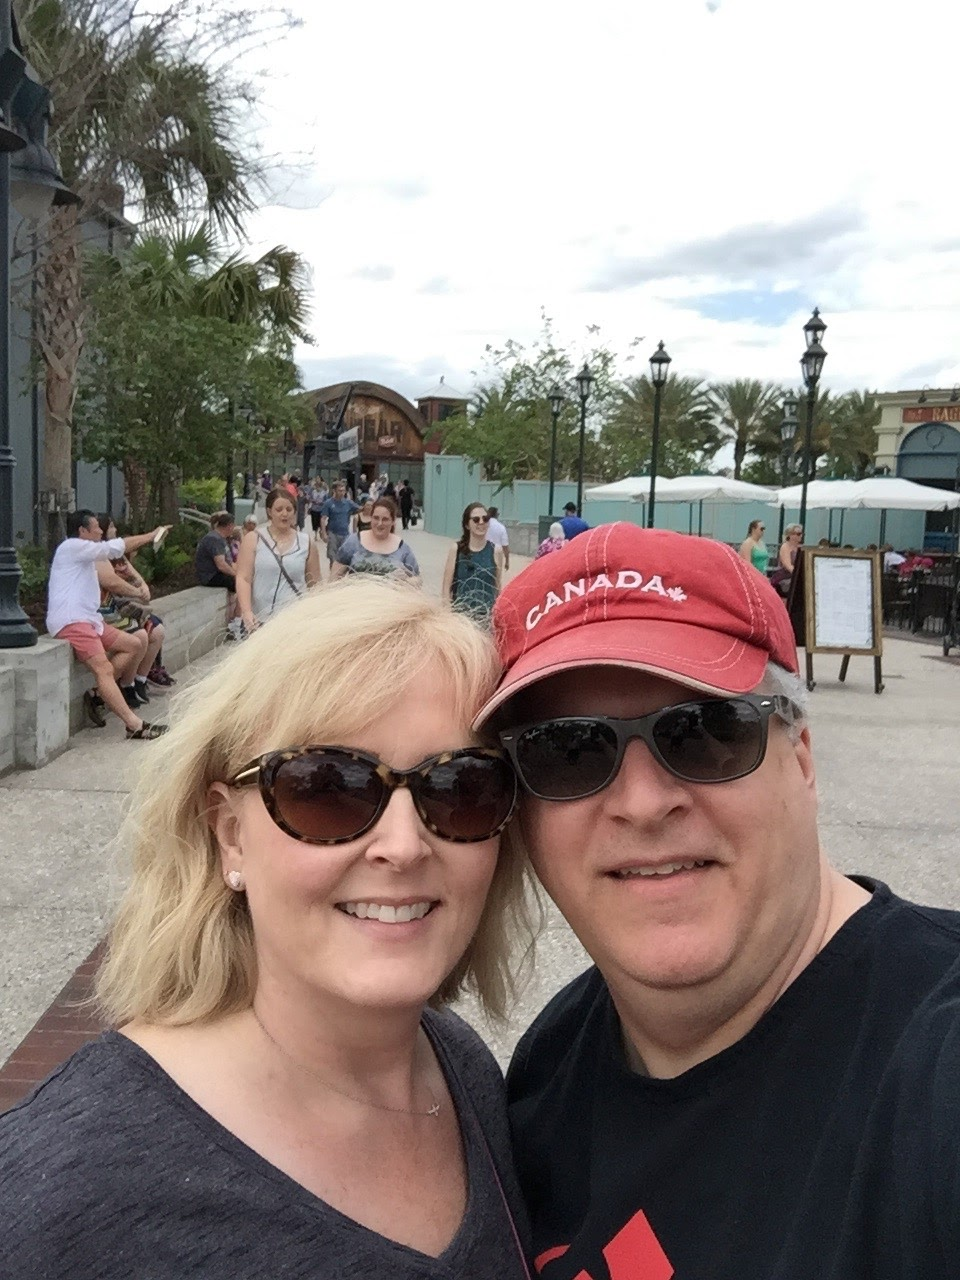 The Tarkins at Disney Springs!